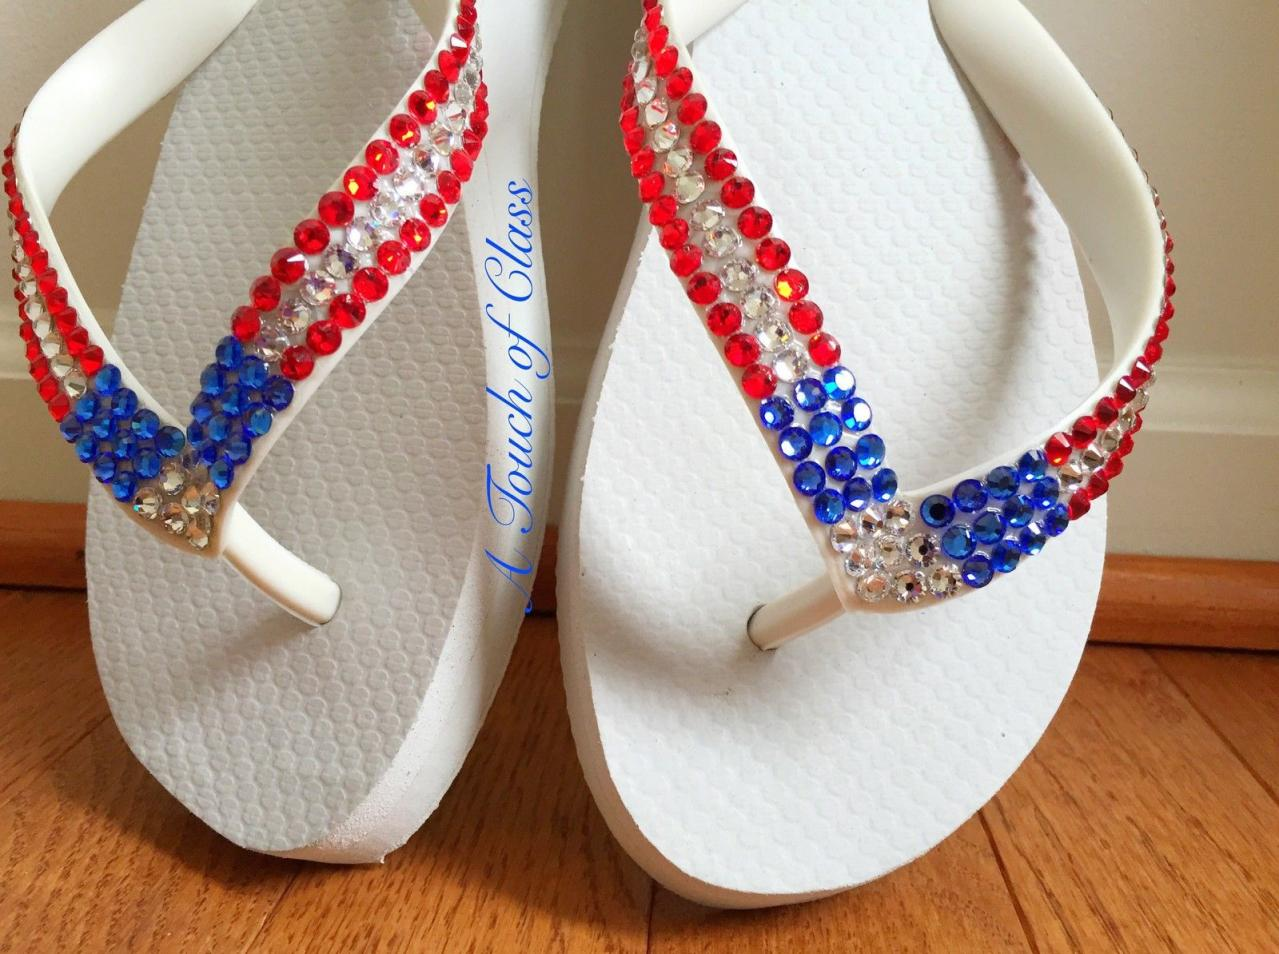 4th of July, Memorial Day, and Labor Day Flip Flops customized with Swarovski crystal rhinestones